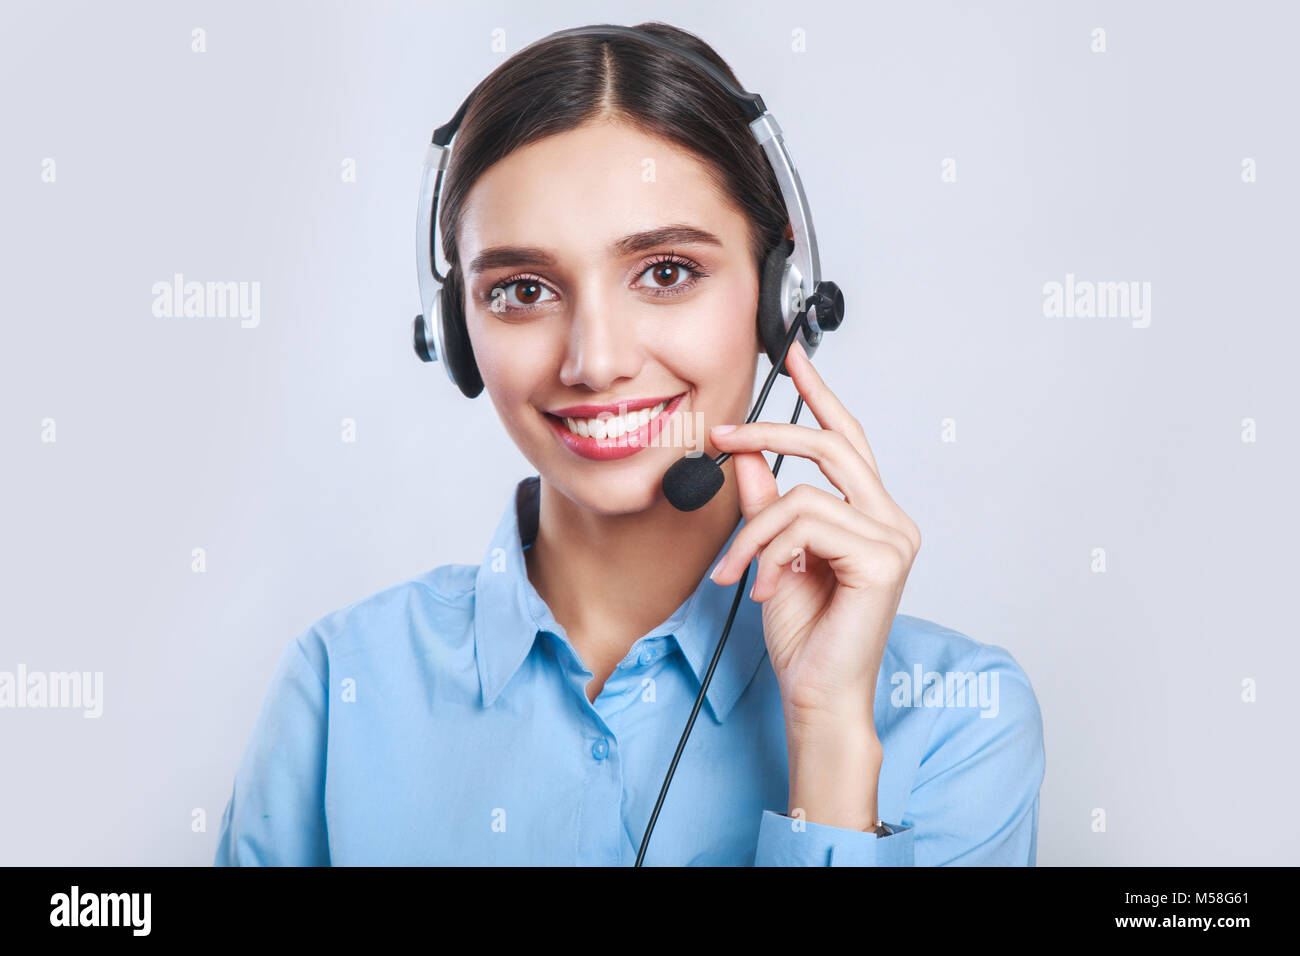 Woman customer service worker, call center smiling operator with phone headset - Stock Image